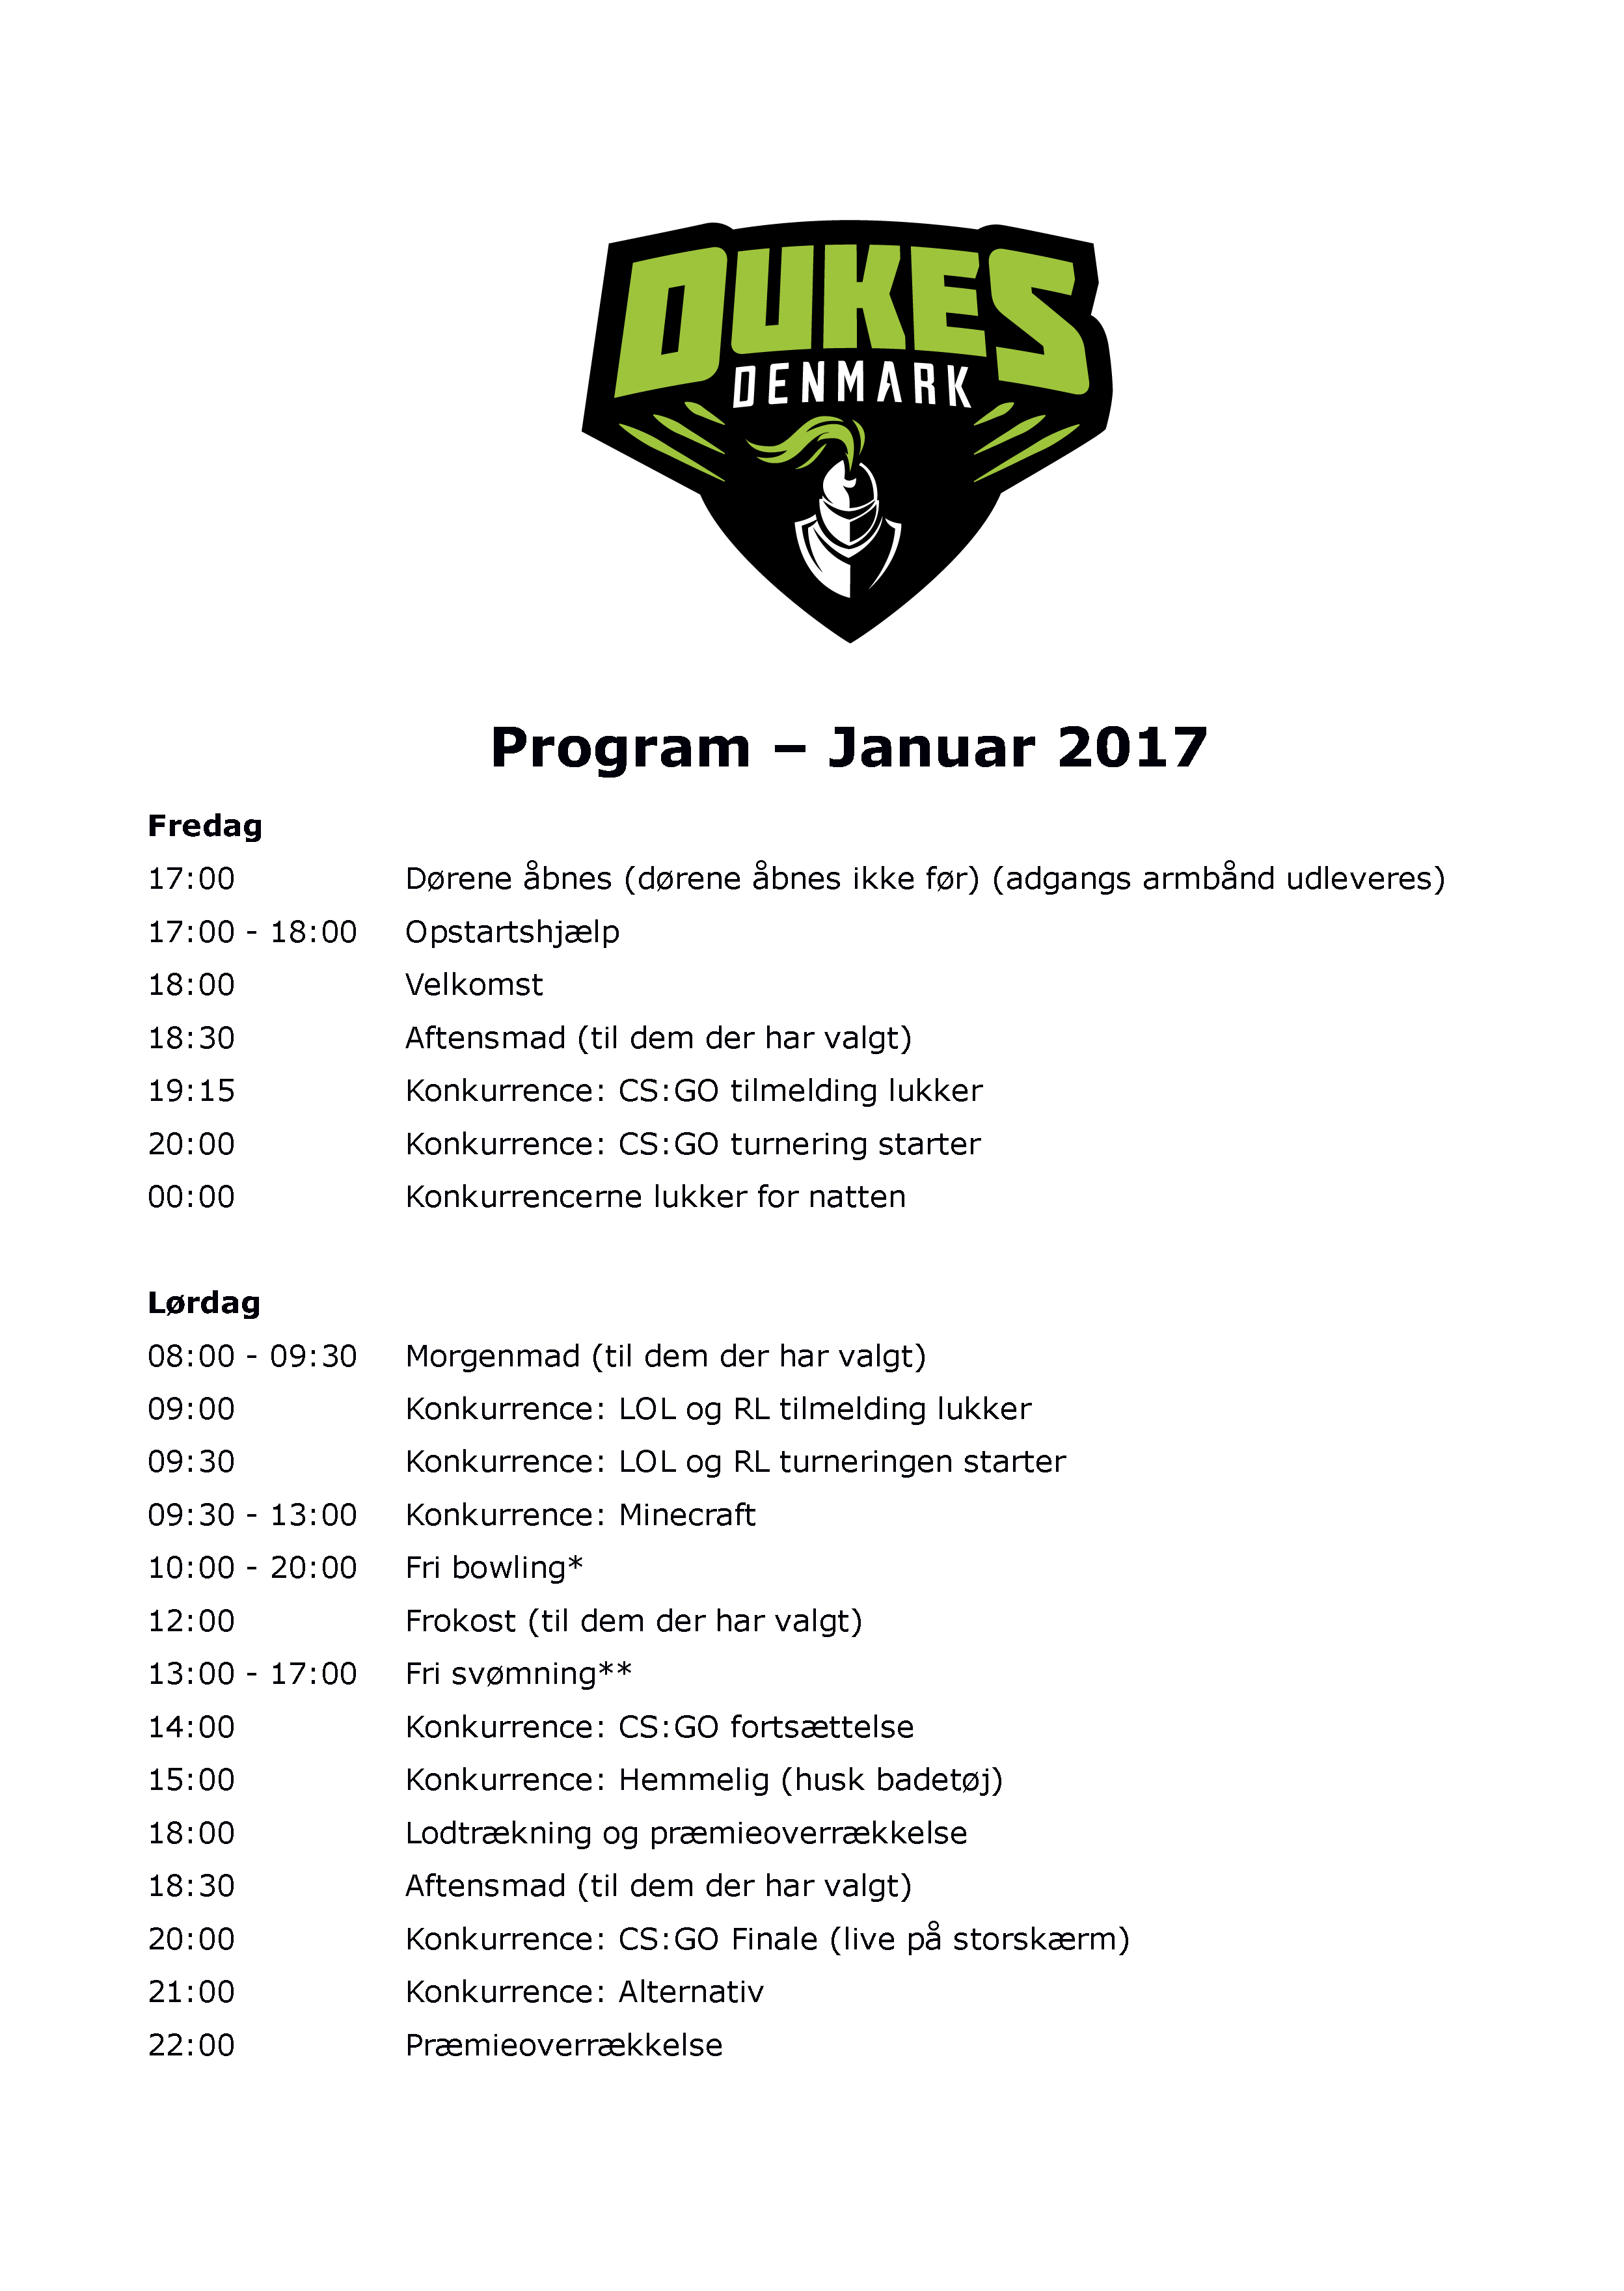 deltager-program-januar-2017-google-docs_page_1